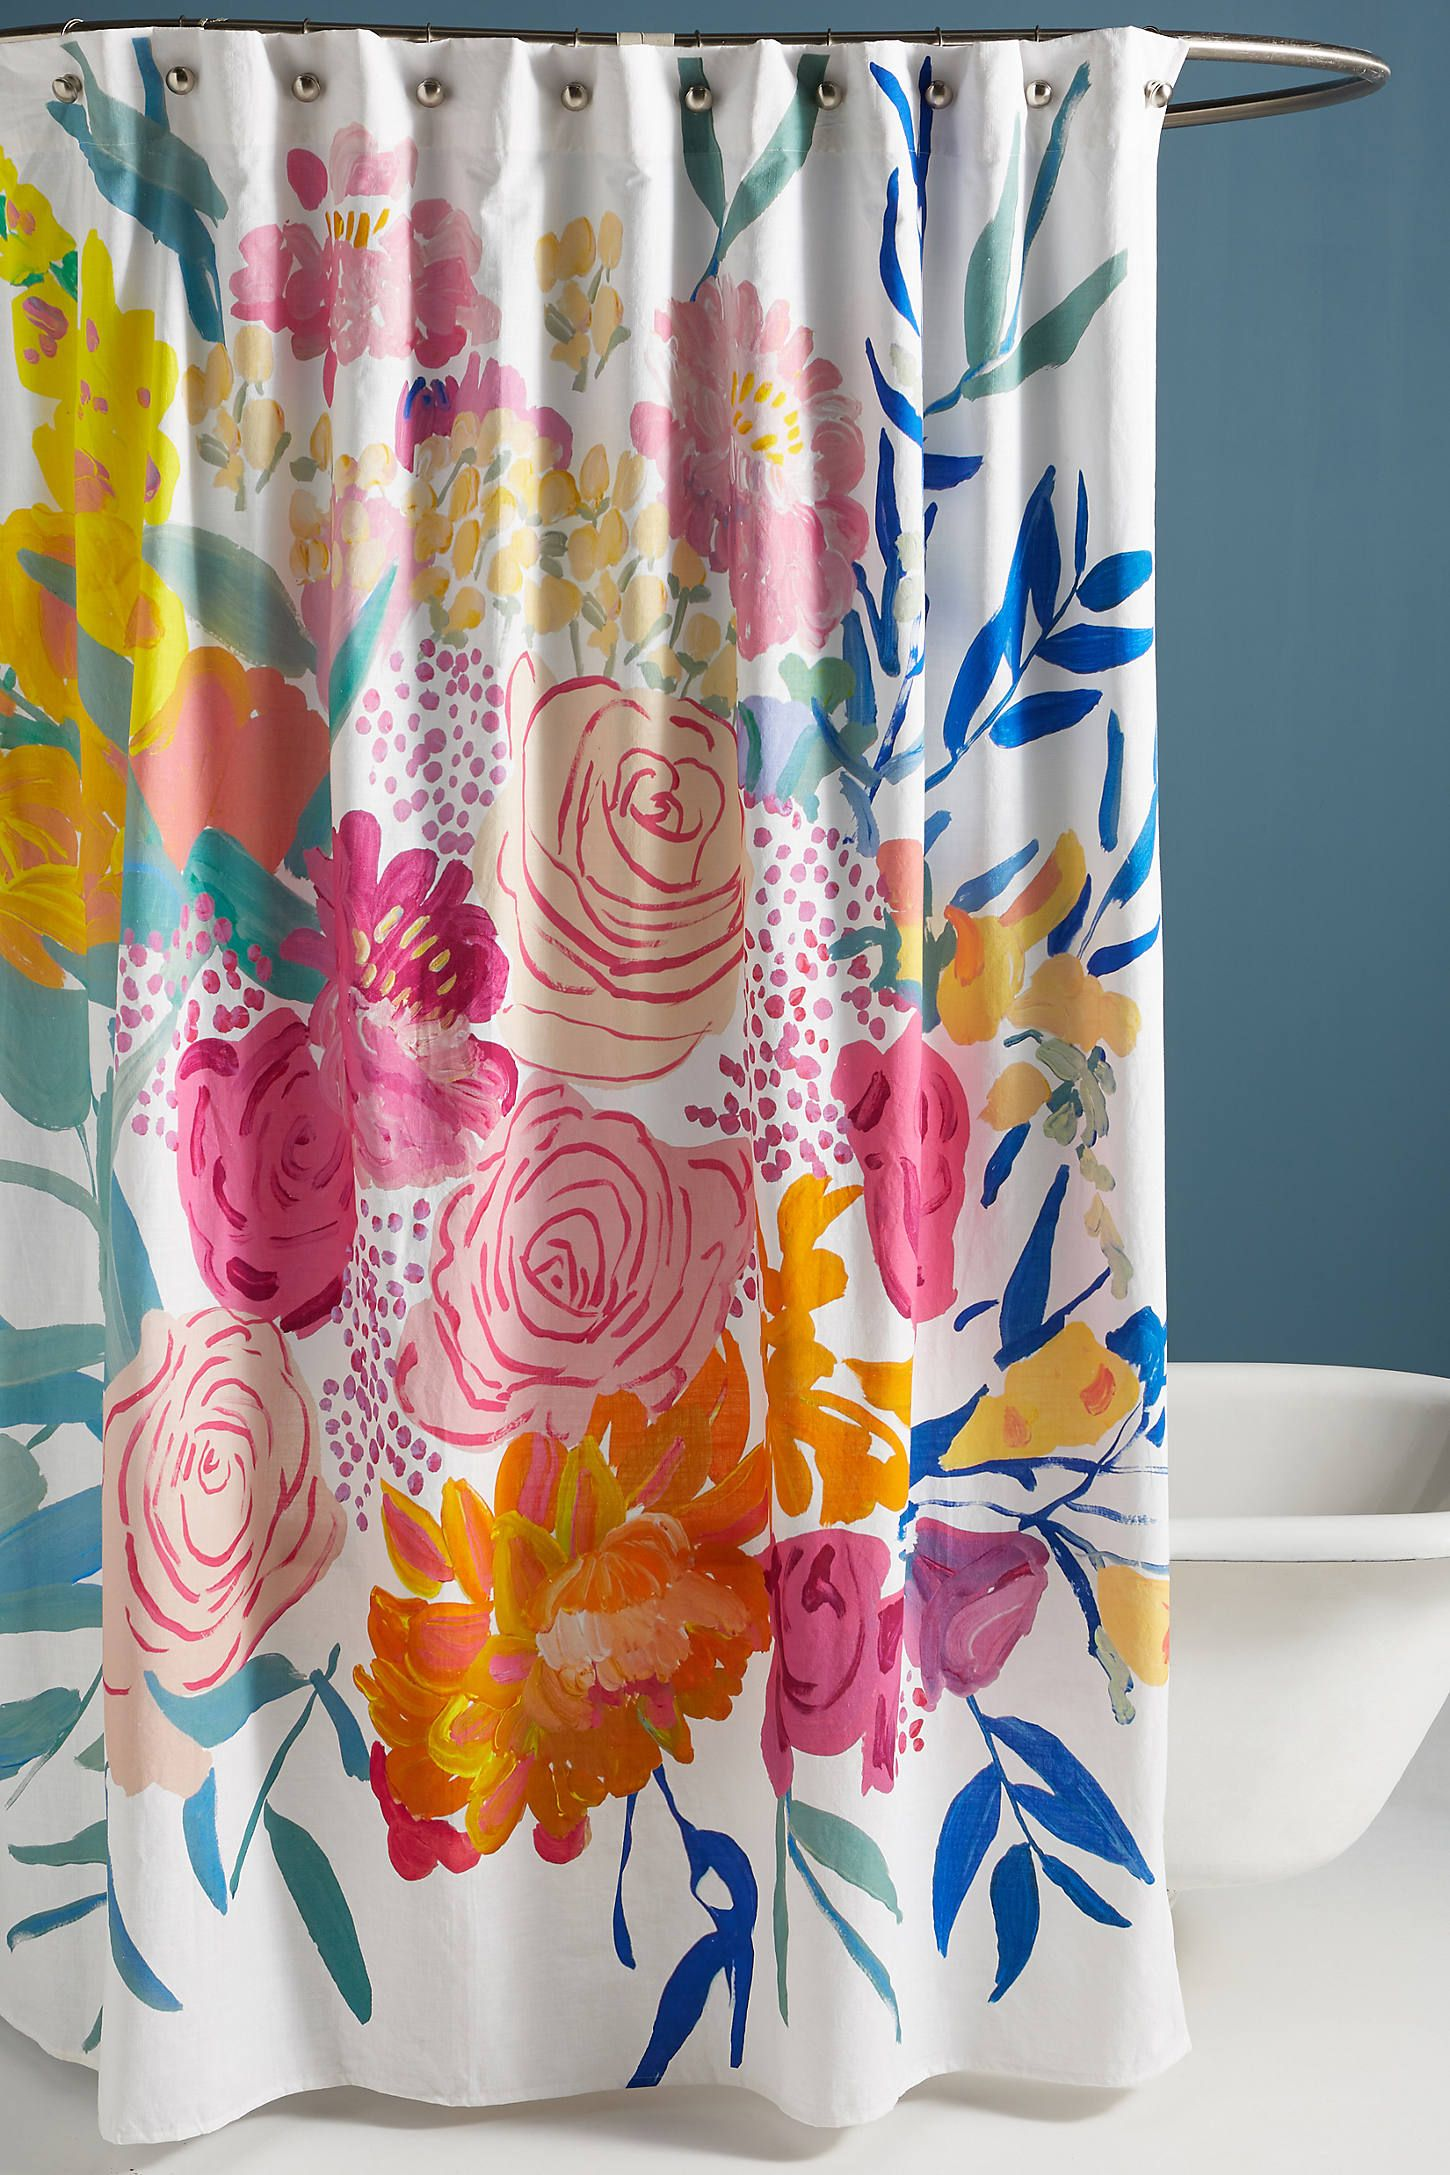 Paint Petals Shower Curtain Curtains New Toilet Small Bathroom